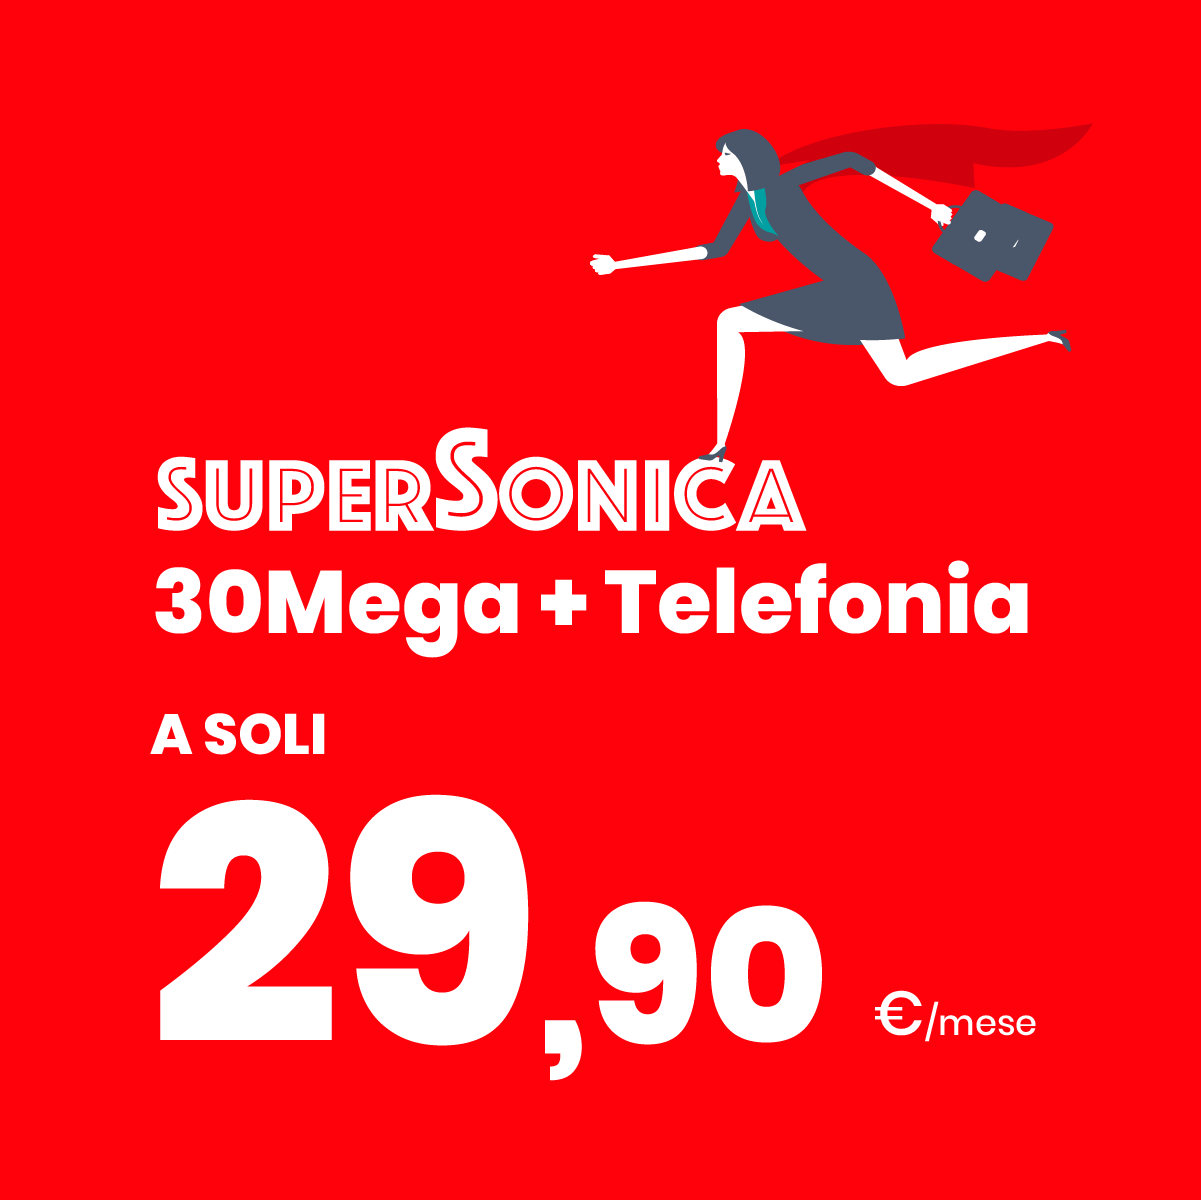 supersonica sonicatel